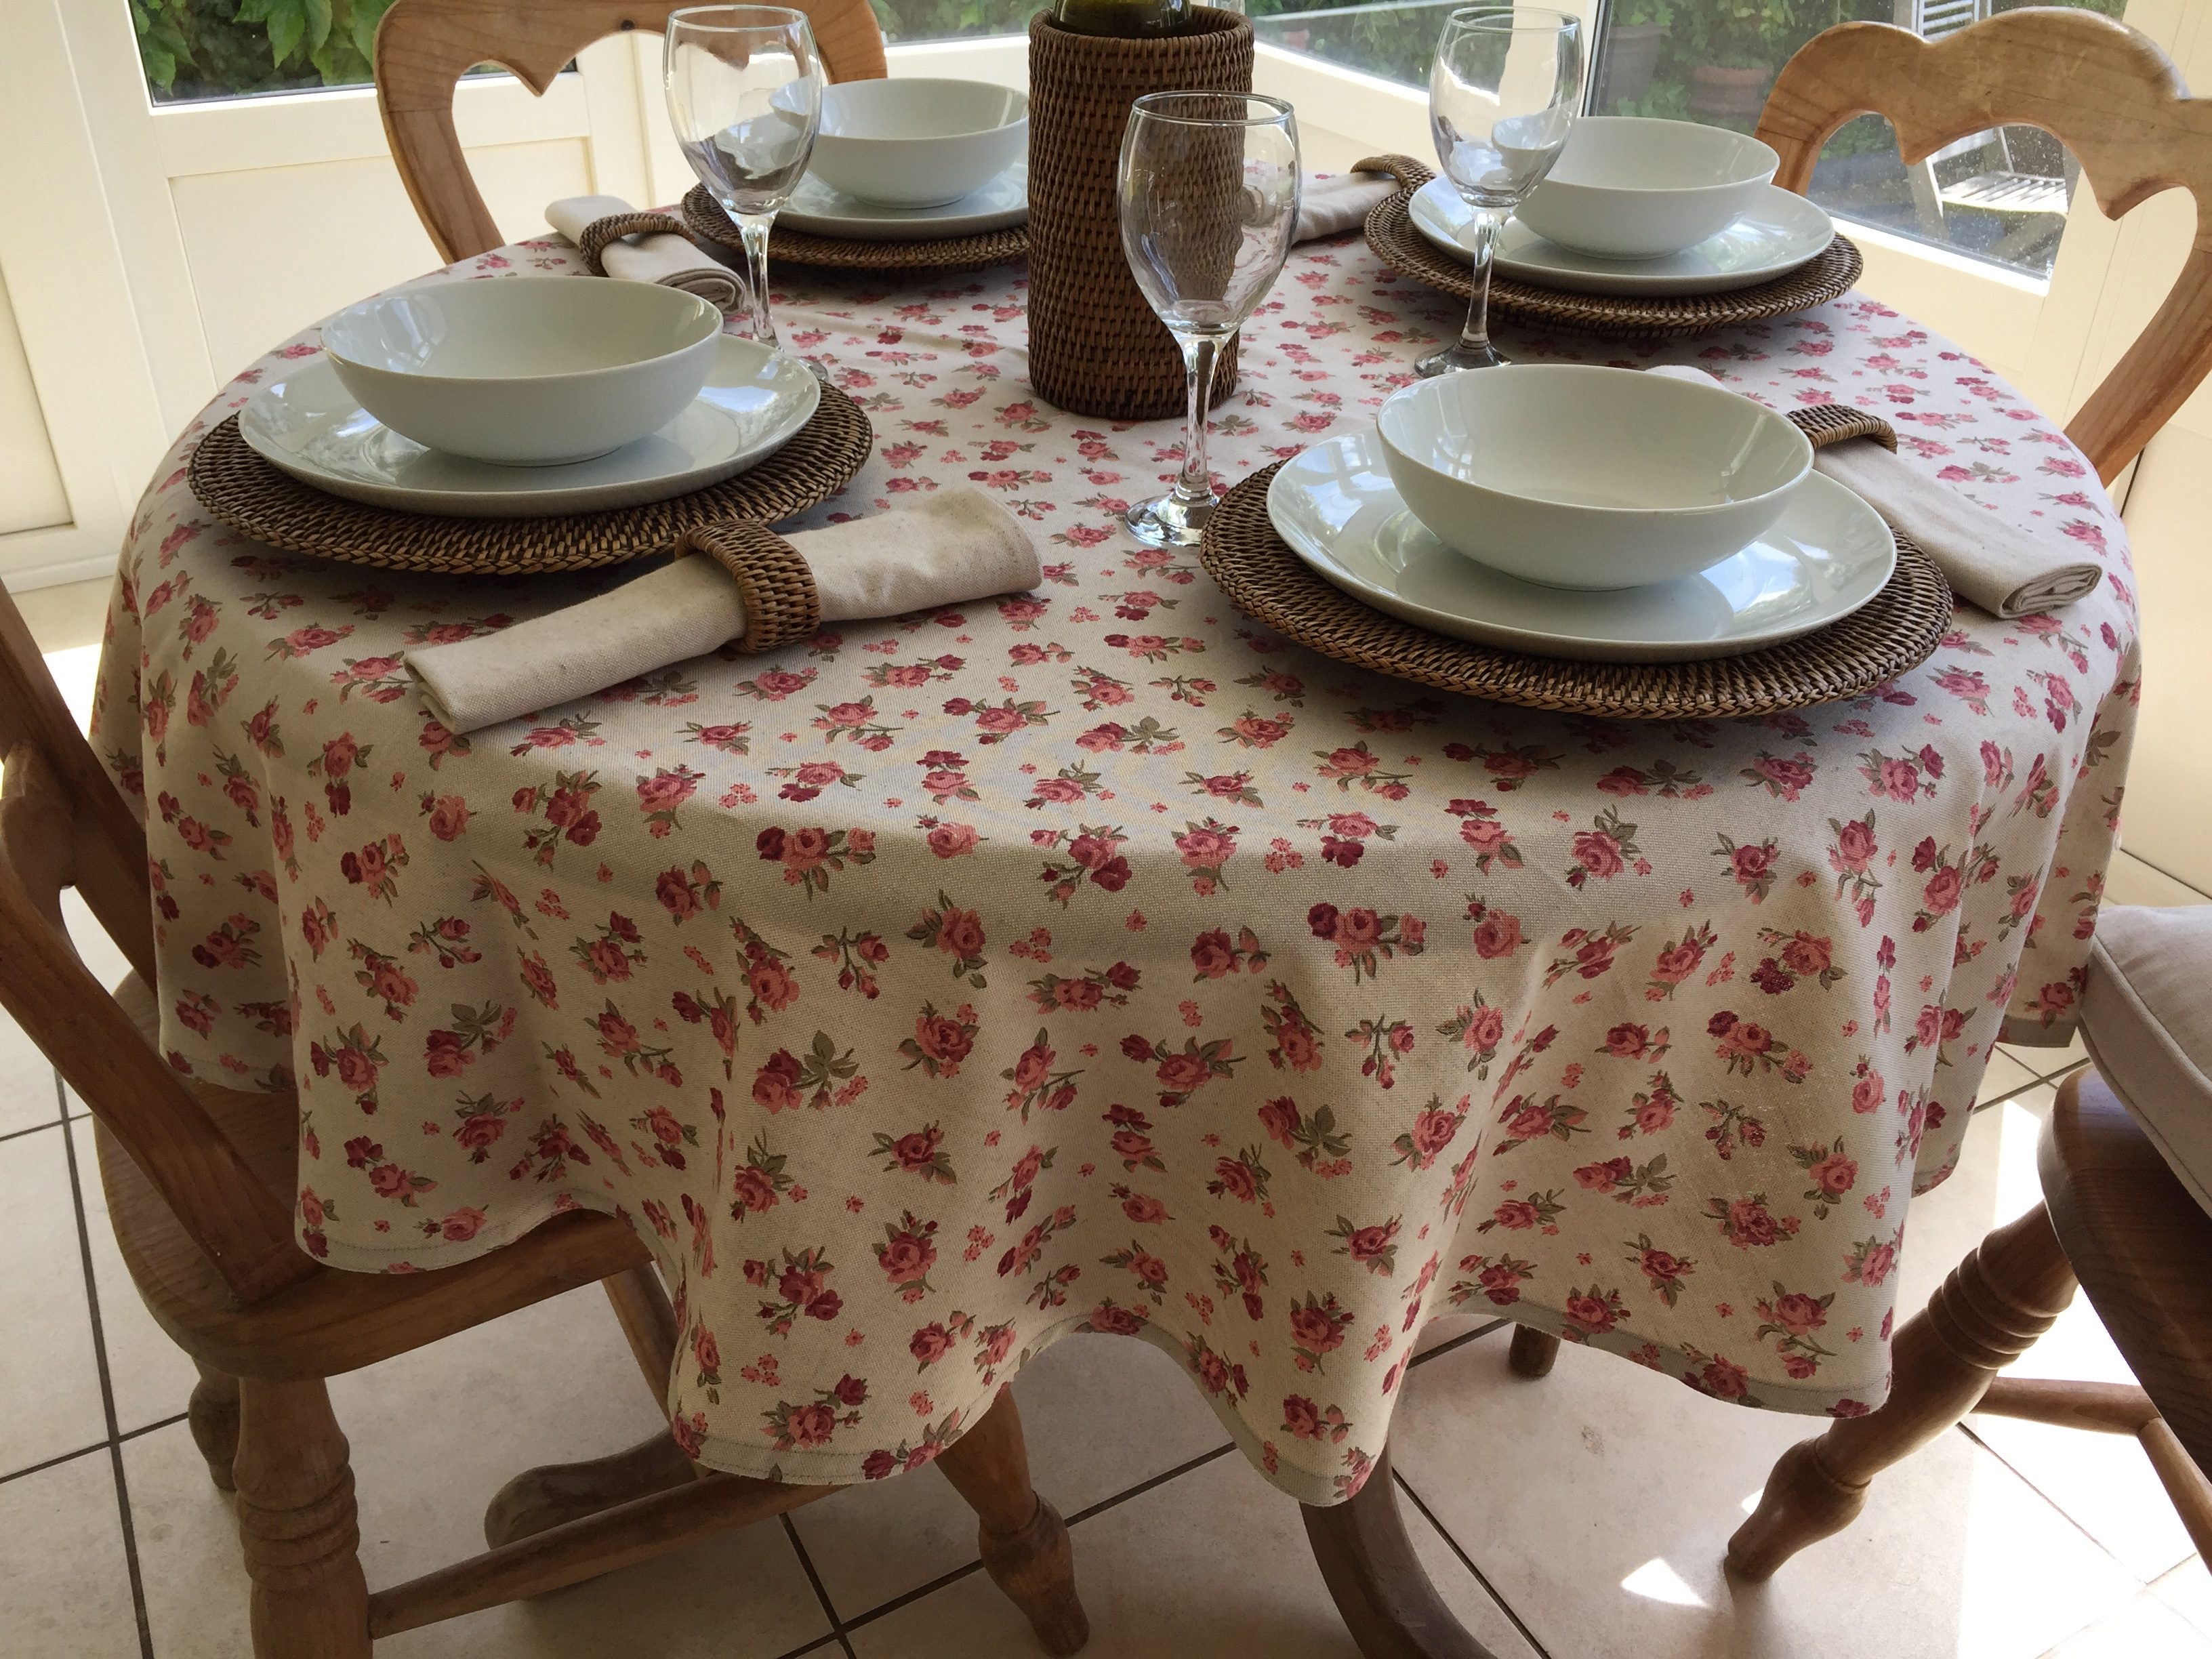 25 Off Natural Collection 4 Seater Round Pink Flowers